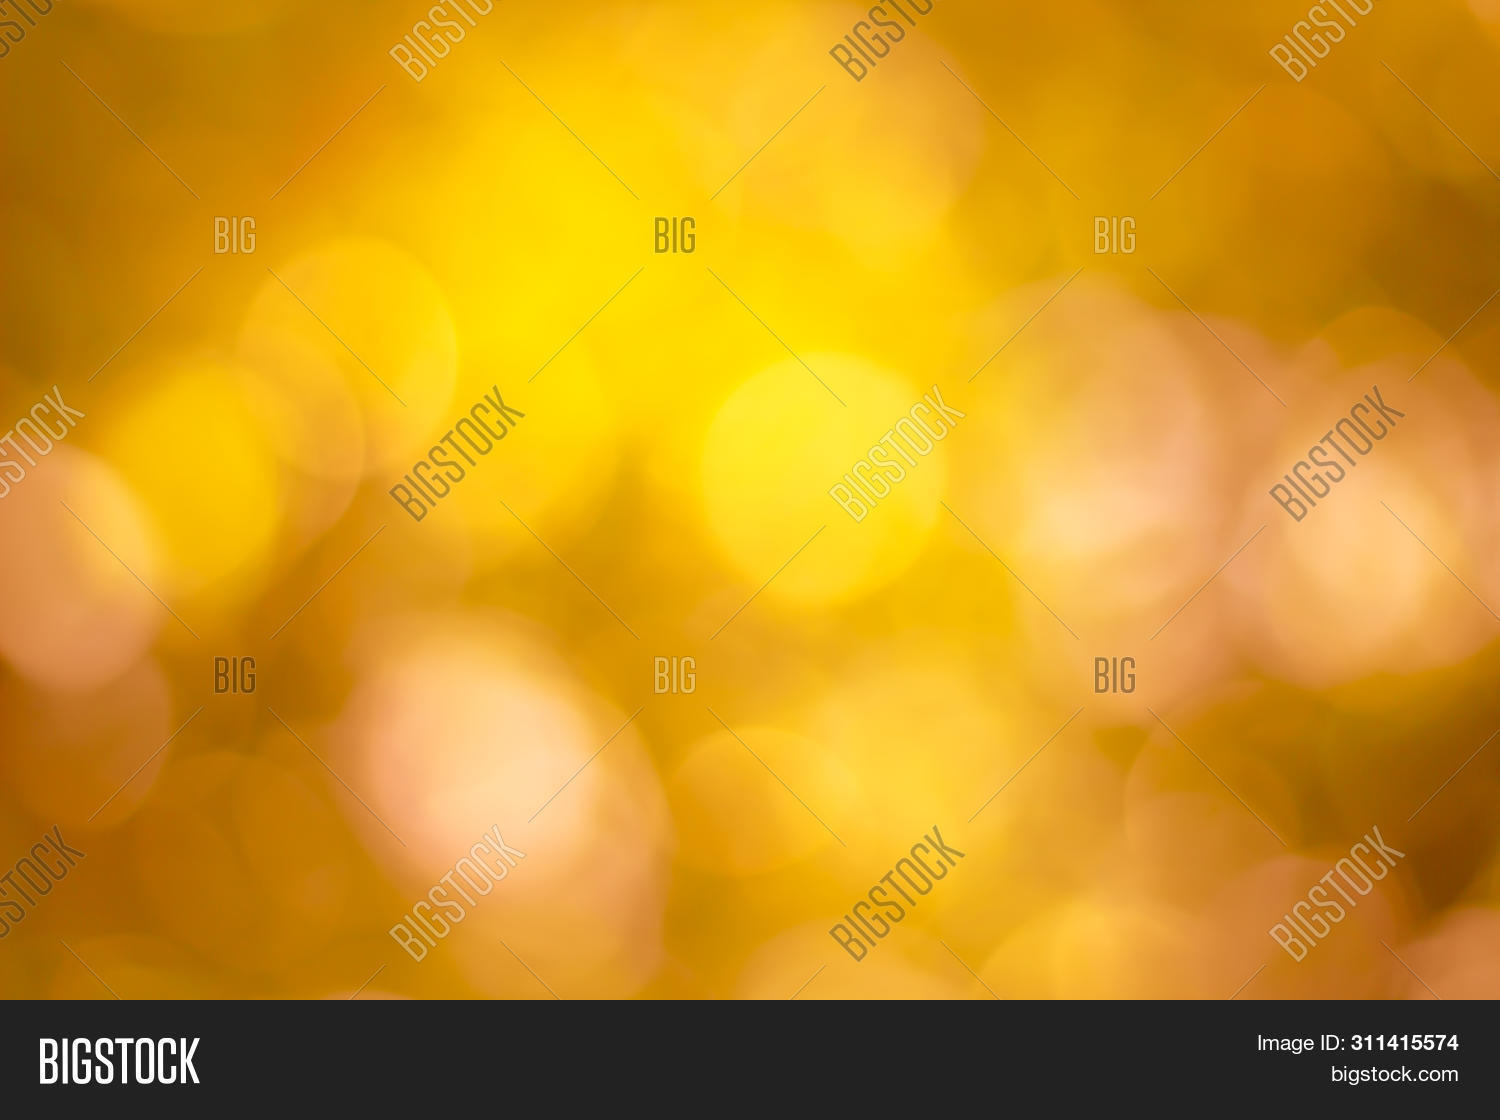 abstract,backdrop,ball,black,blurred,blurry,bokeh,bright,card,celebrate,celebration,christmas,circles,color,colorful,concept,decorate,decoration,decorative,defocused,dreamy,eve,fashion,festive,focused,gift,glitter,gold,golden,gradient,greeting,lights,modern,natural,new,orange,ornament,season,shape,shine,silhouette,silver,snow,snowfall,snowflake,sparkle,summer,white,winter,yellow